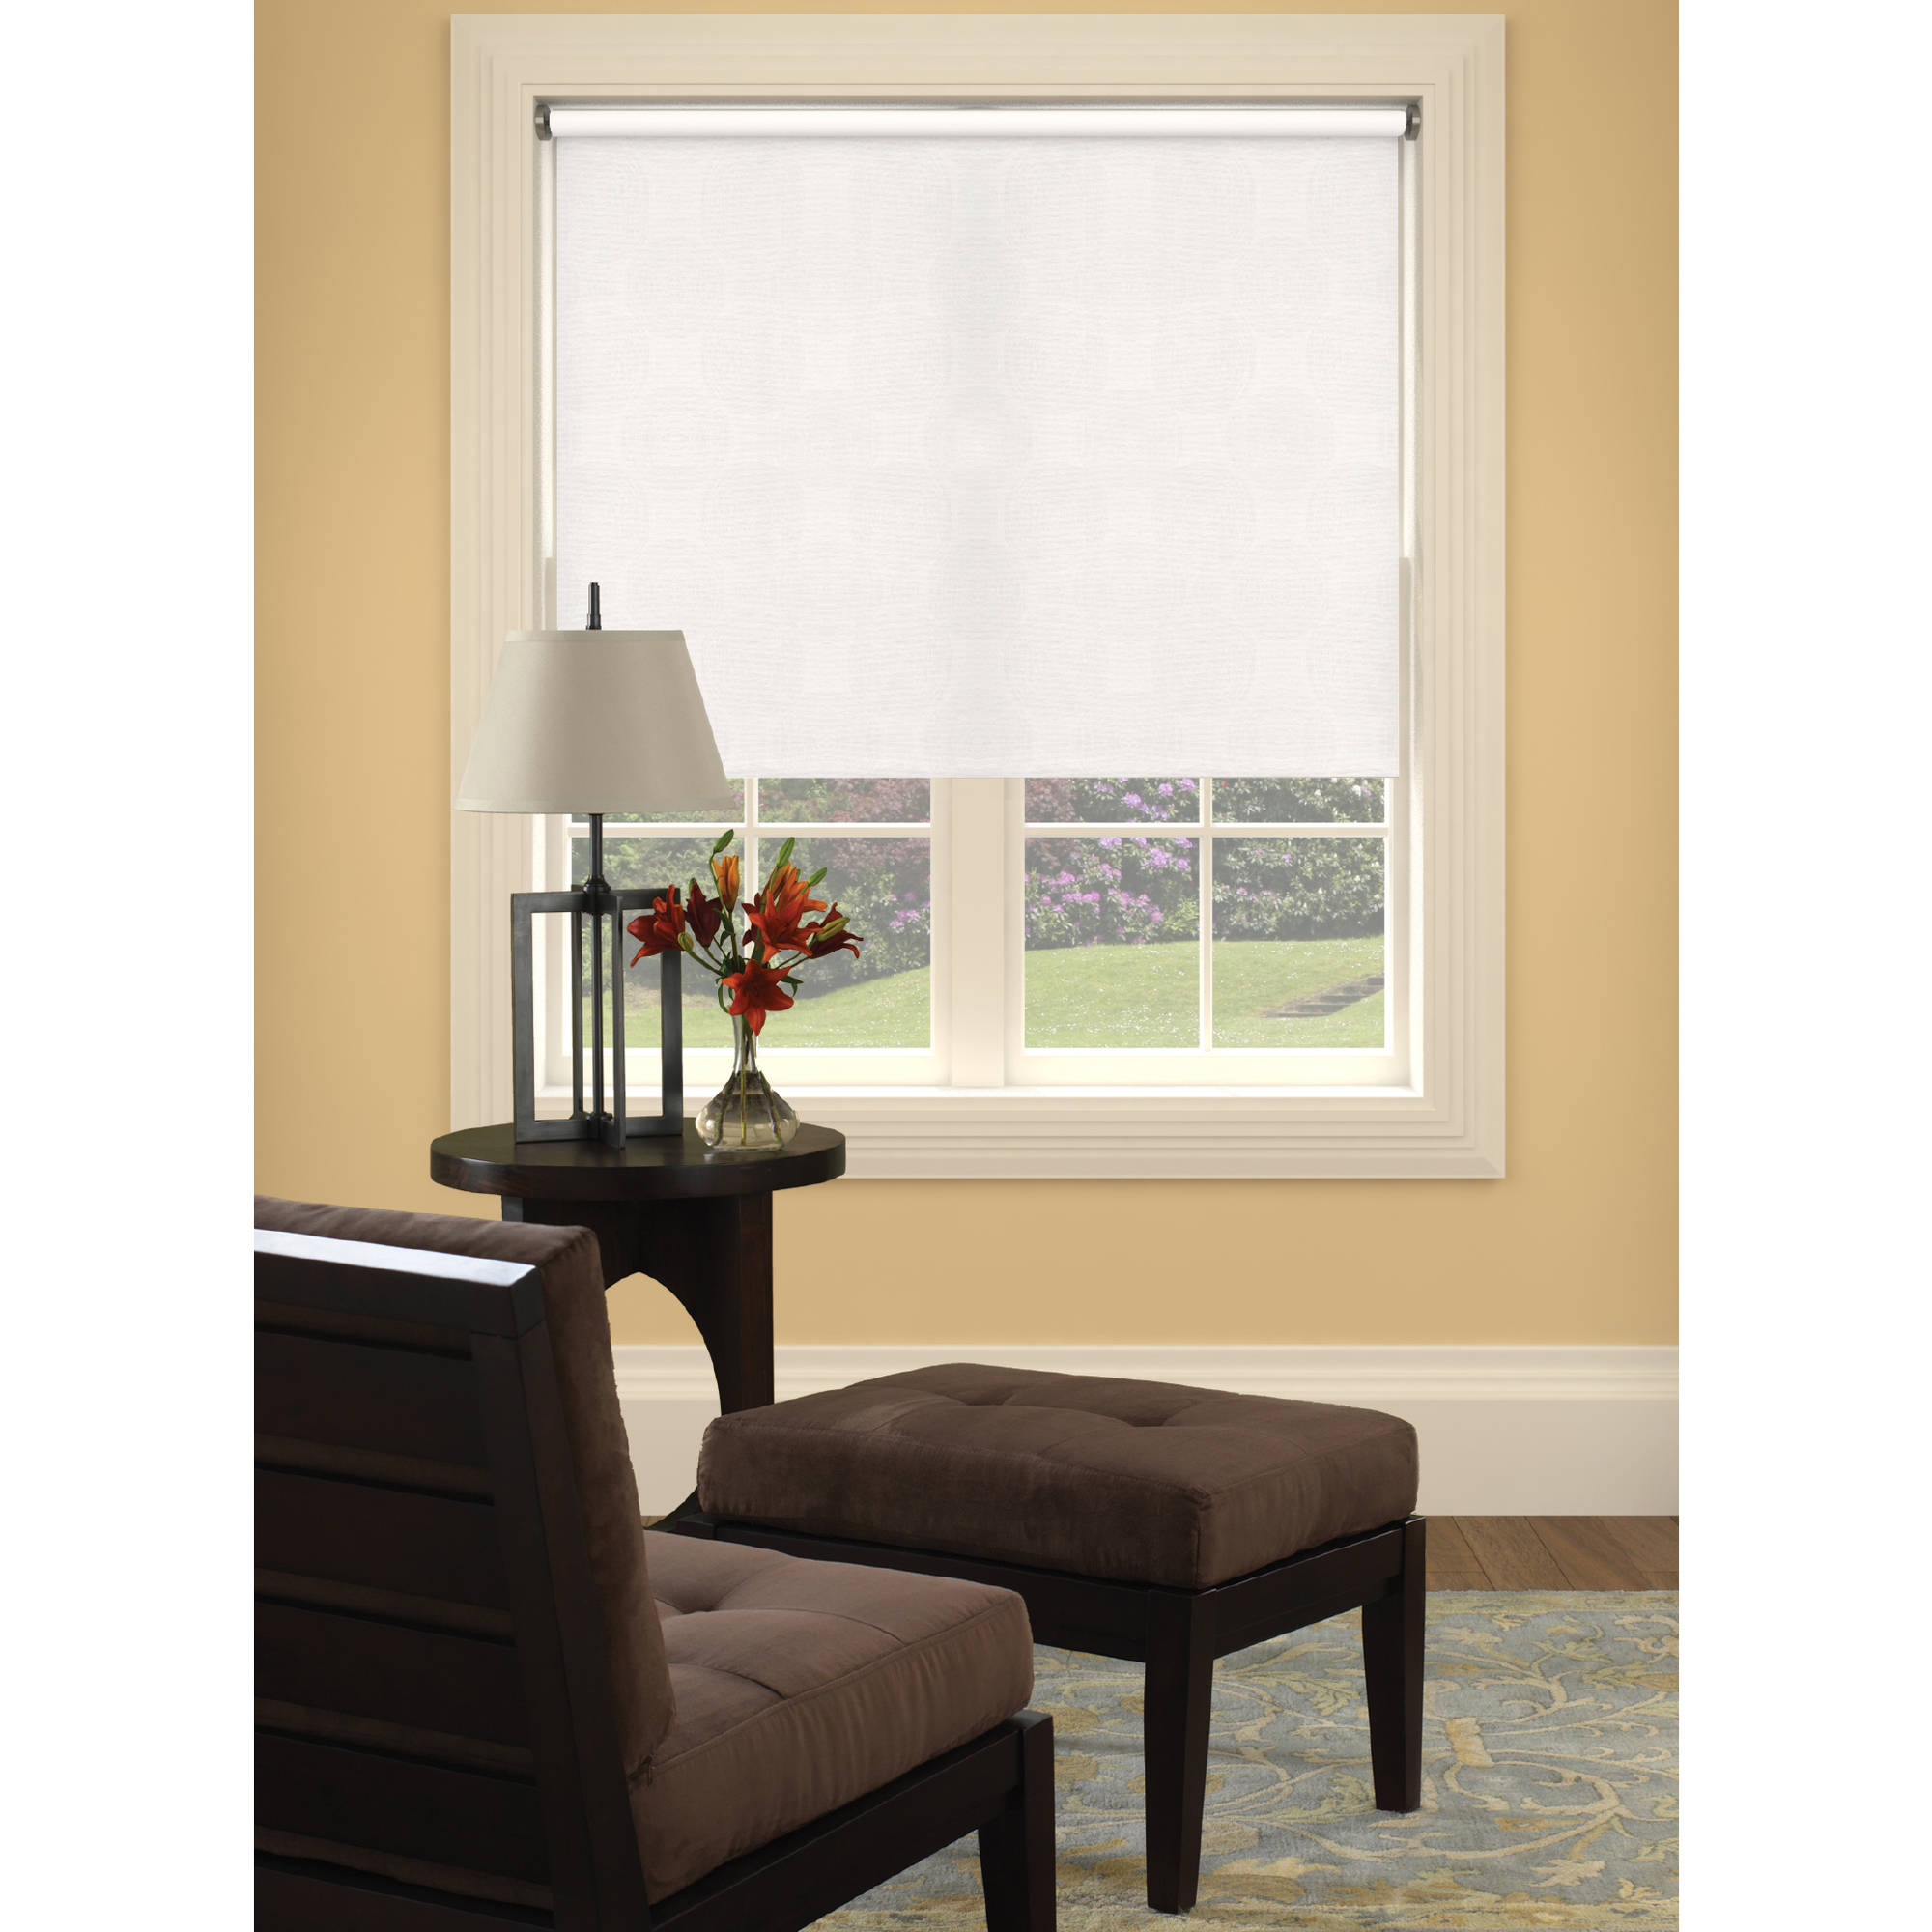 bali sizeathome vinyl roller shades available in multiple sizes and colors - Roll Up Shades